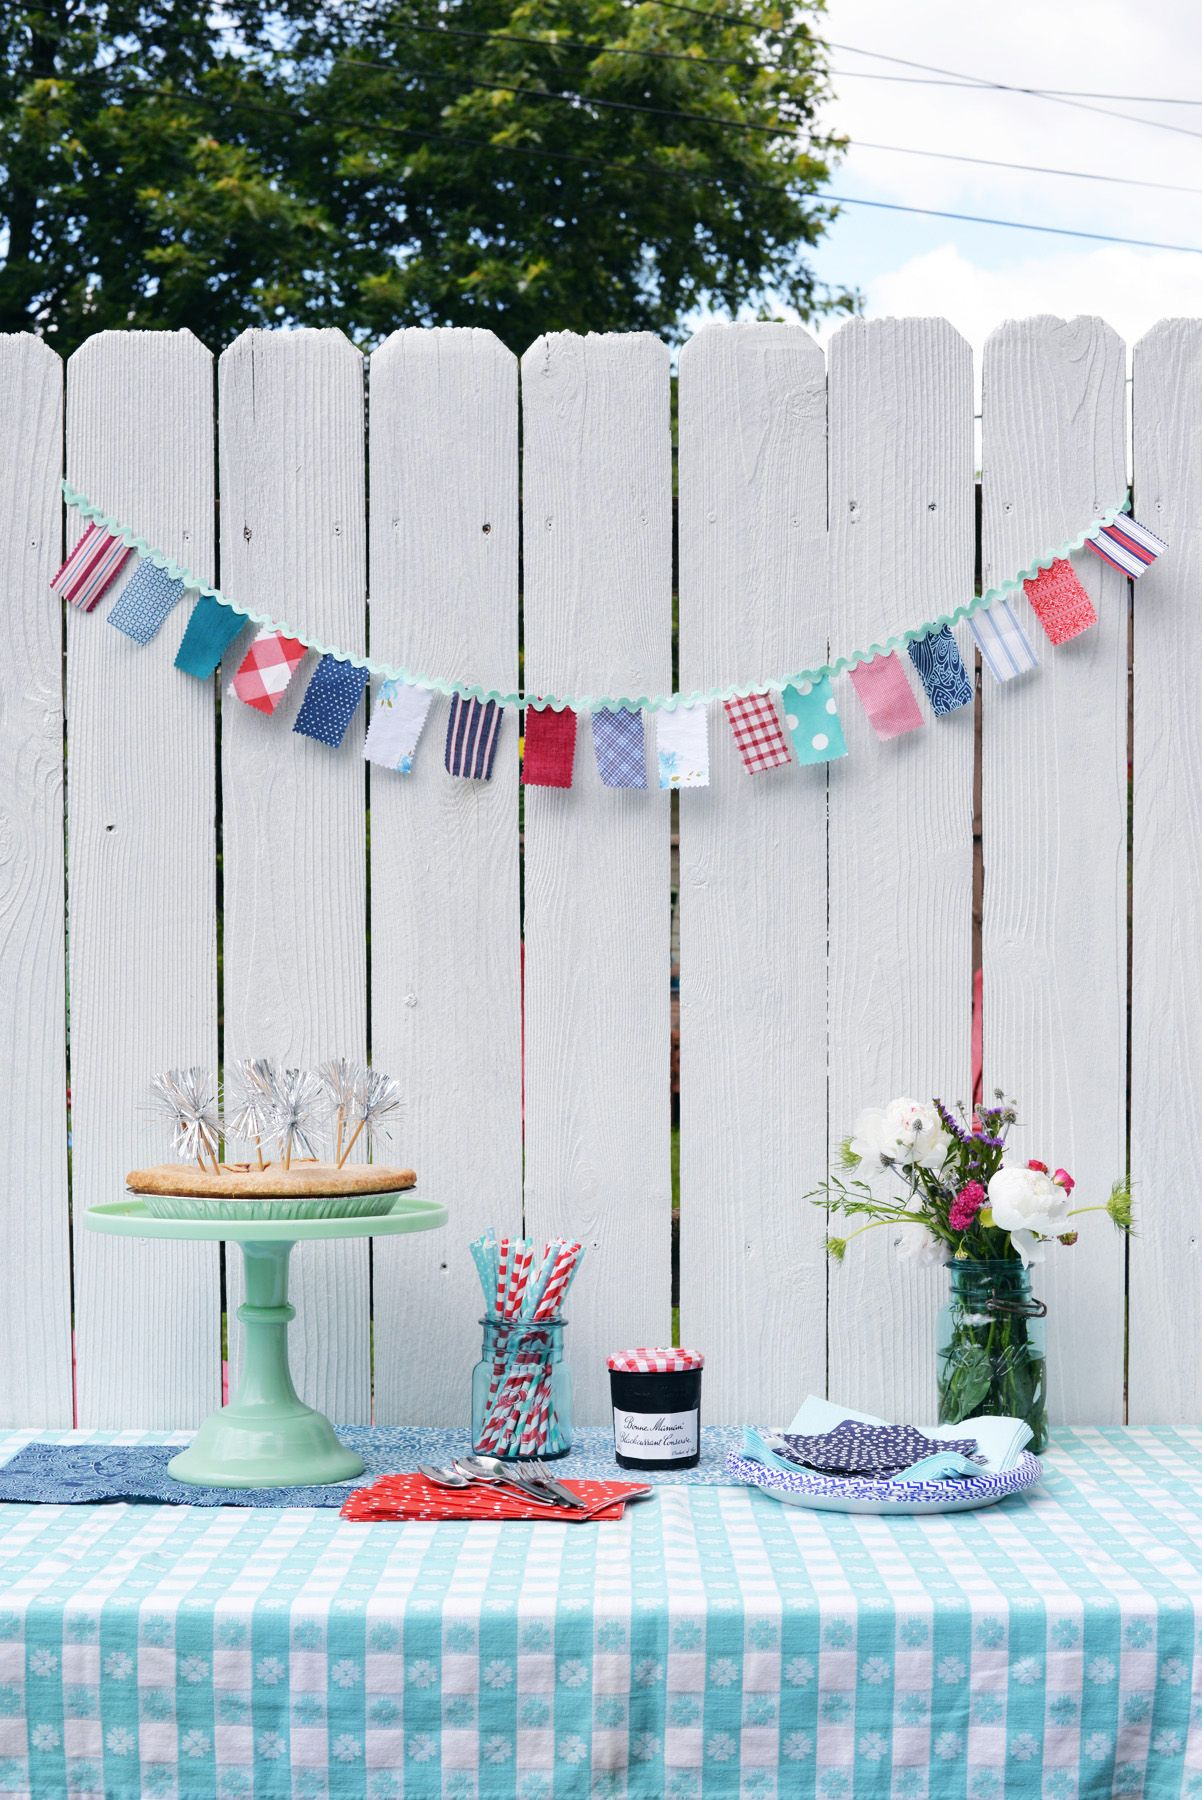 DIY-fabric-banner-for-patriotic-day